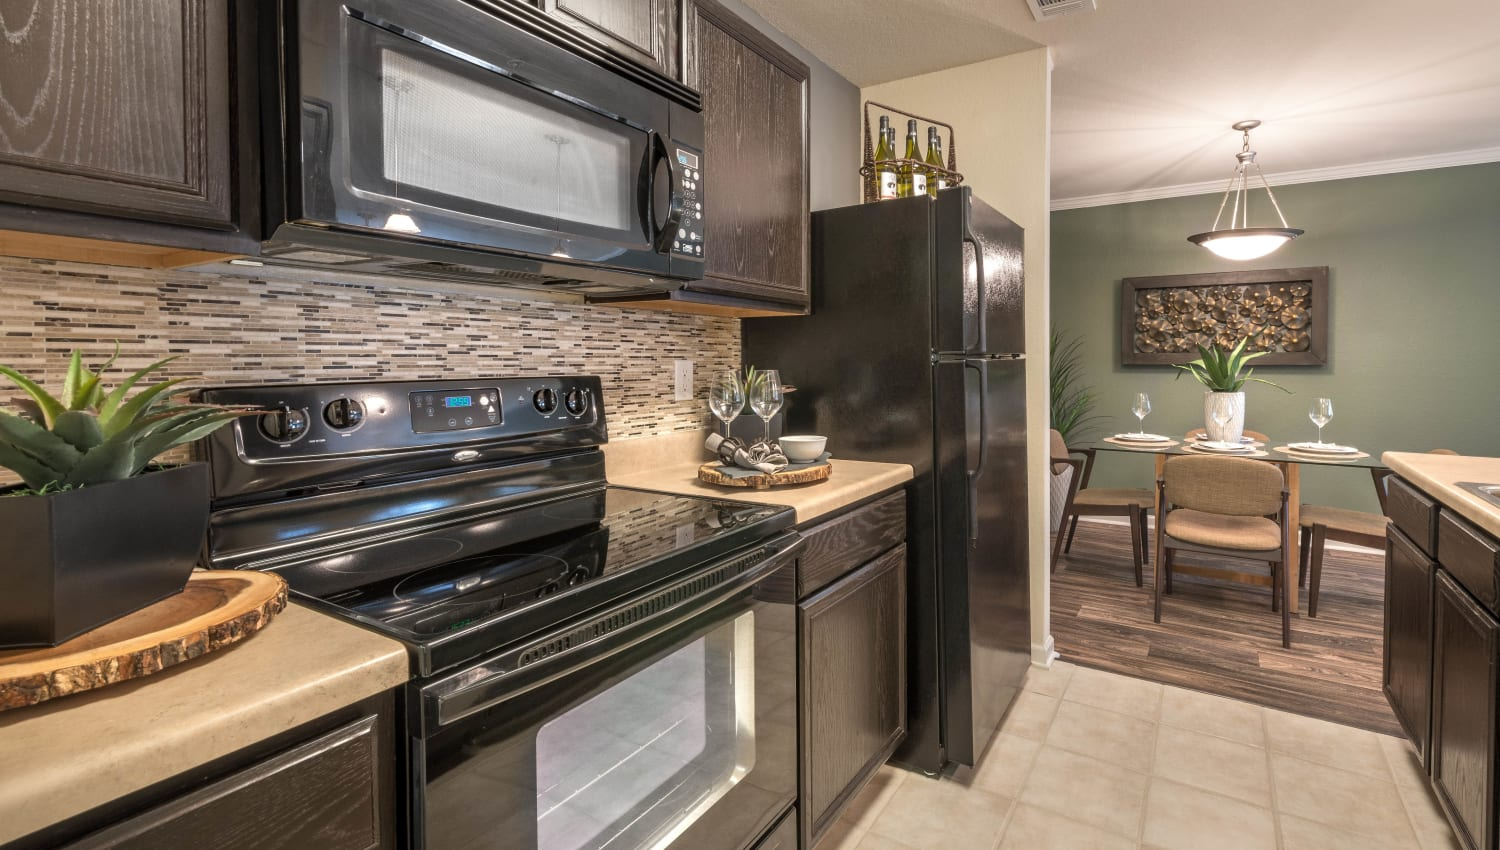 Model apartment's kitchen at Olympus Hillwood in Murfreesboro, Tennessee